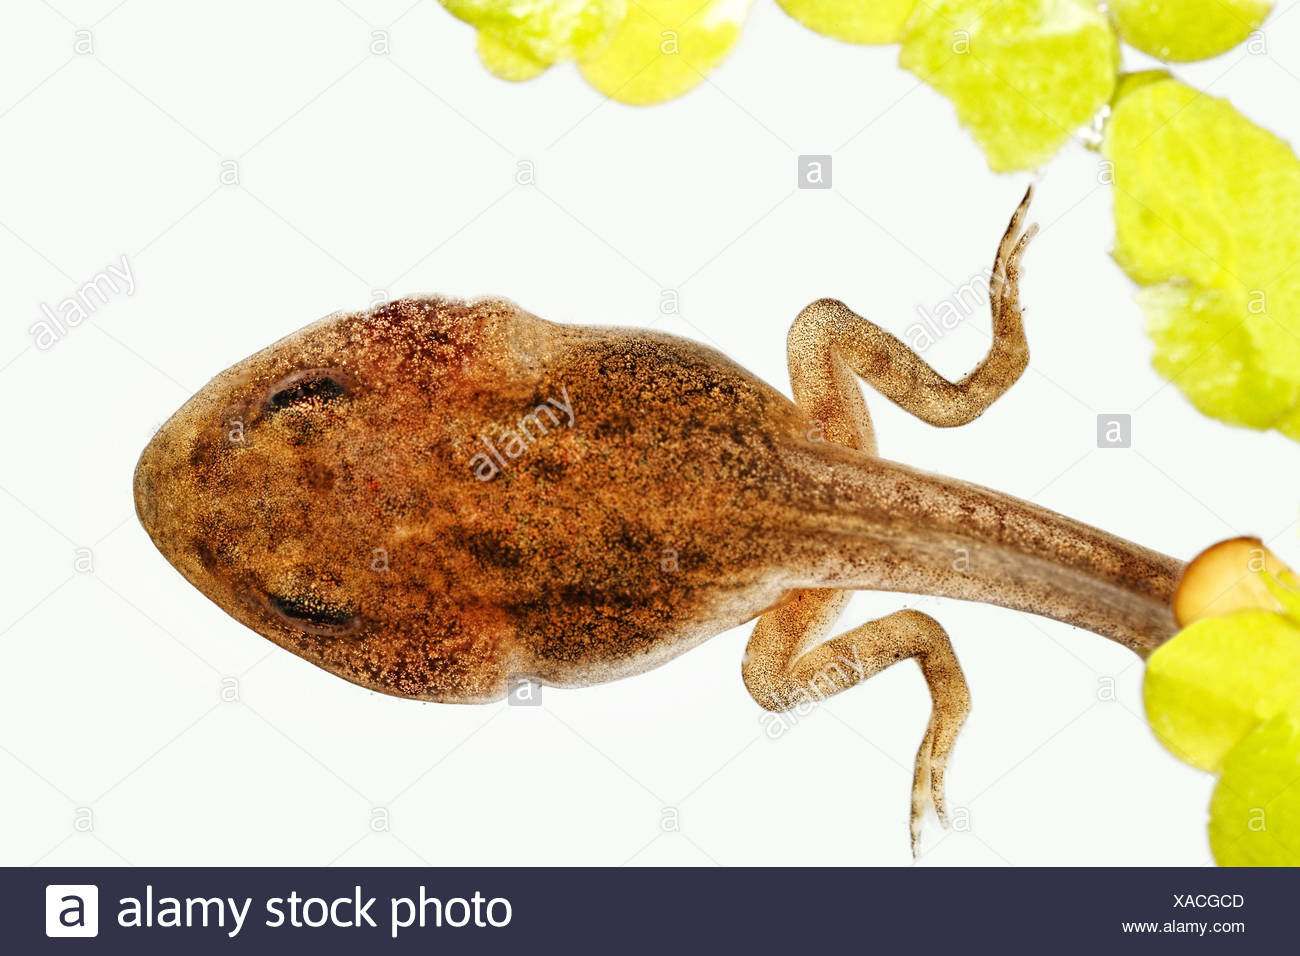 tadpole with duckweeds Rana temporaria grass frog - Stock Image